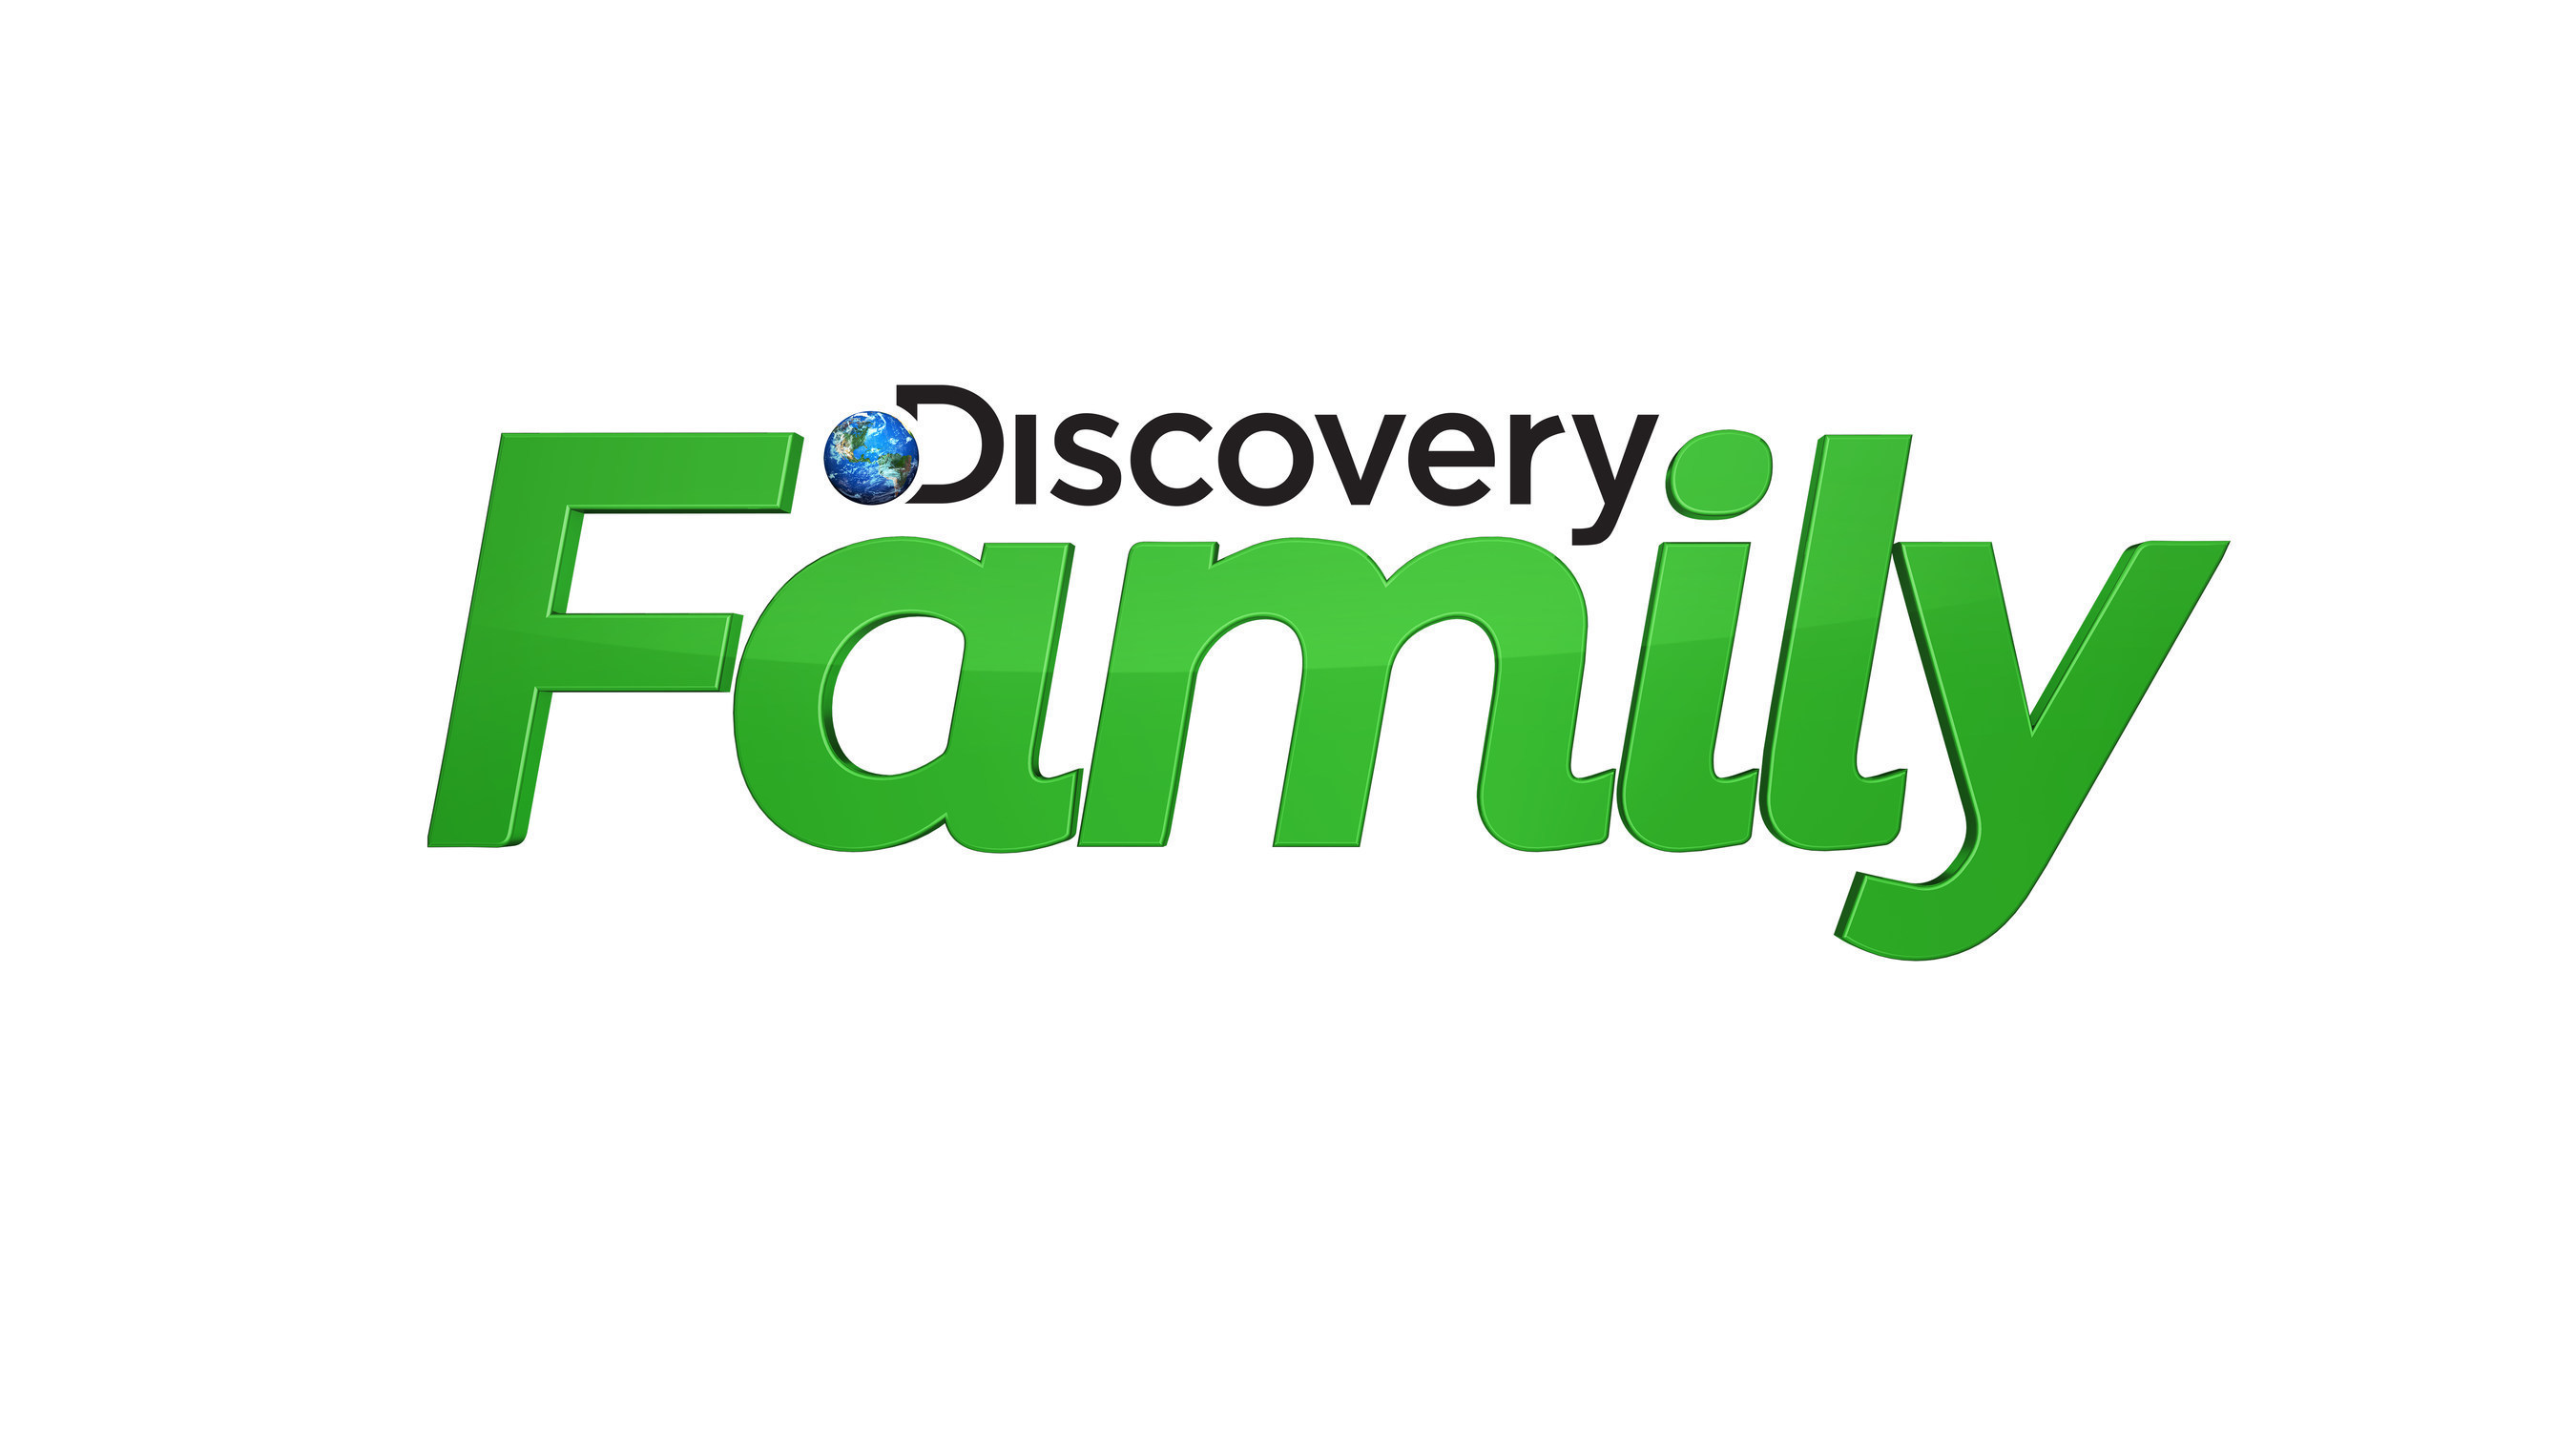 Discovery Family Channel And VolunteerMatch Empower Families To Give Back In Their Local Communities